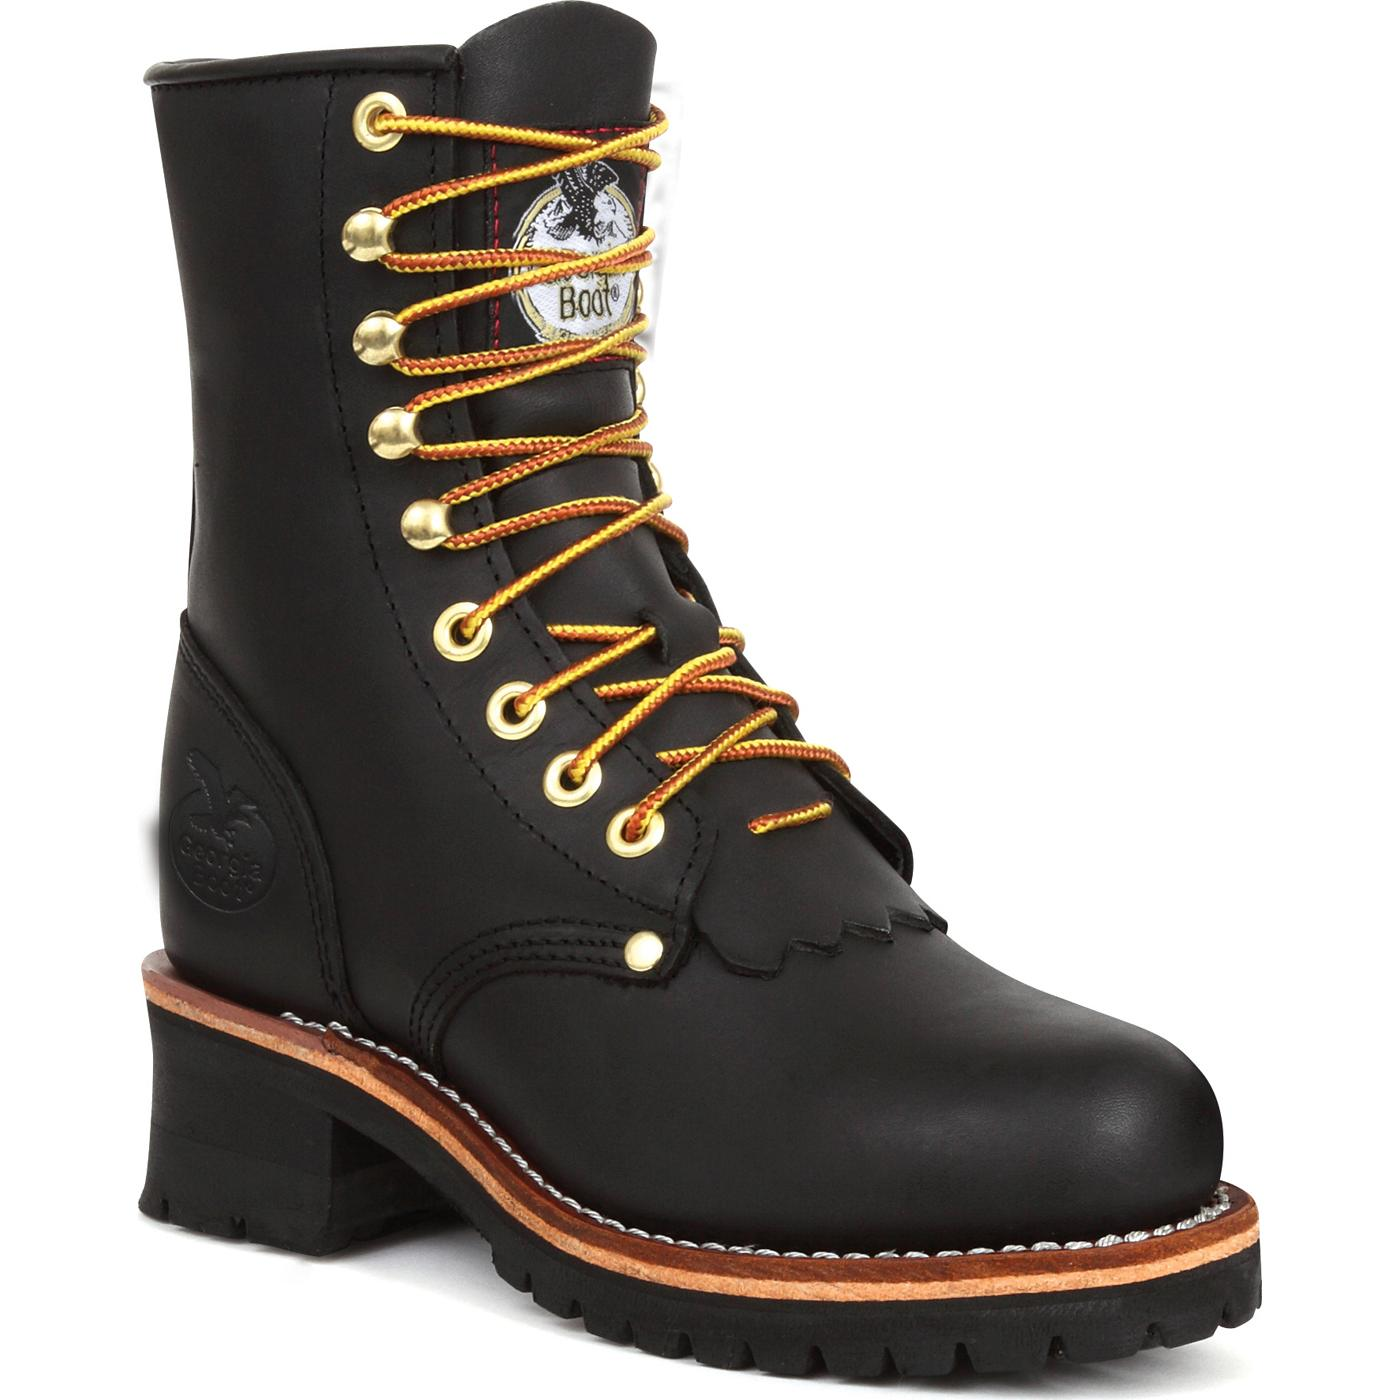 8 quot s logger work boots style g3290